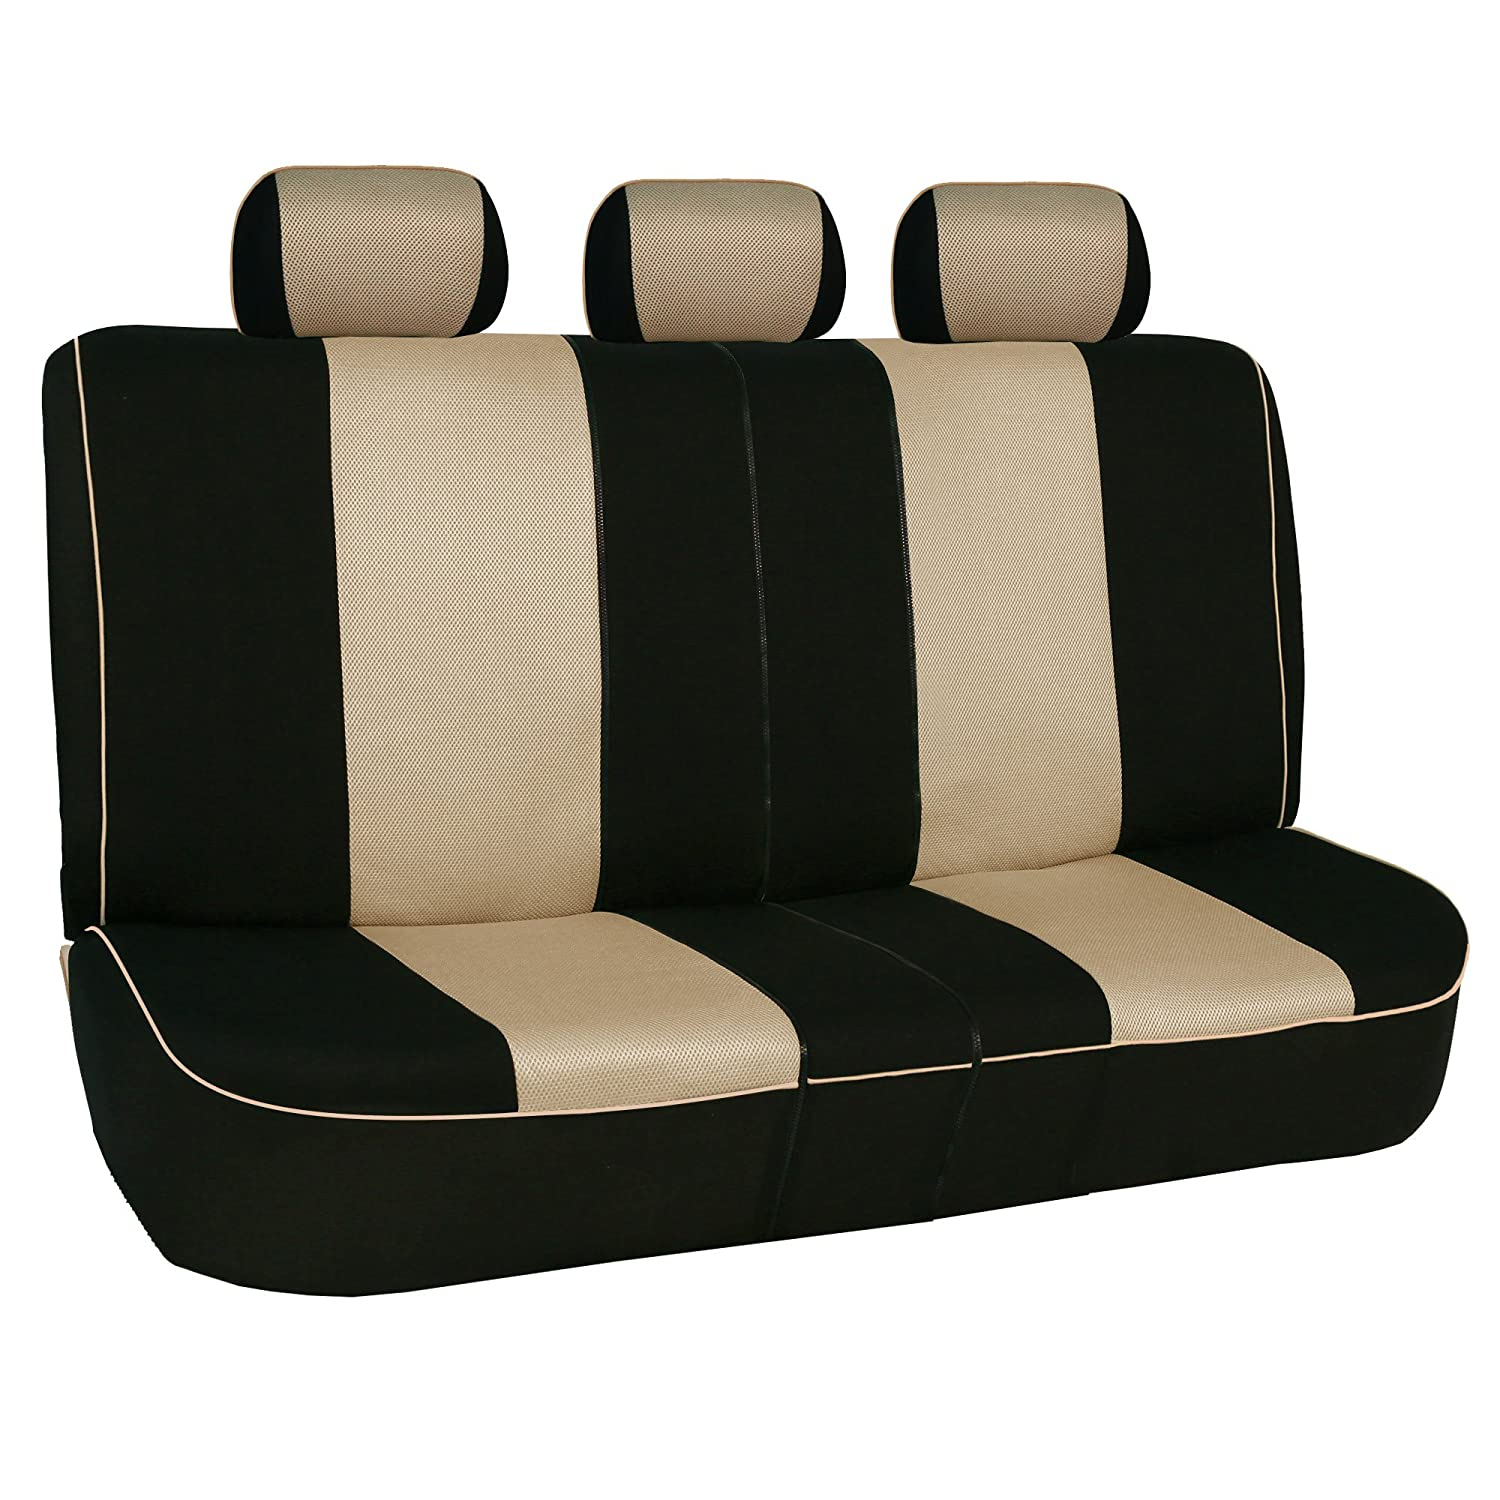 Truck Suv or Van Fit Most Car Airbag compatible and Split Bench FH GROUP FH-FB063115 Full Set Sports Fabric Car Seat Covers Solid Black